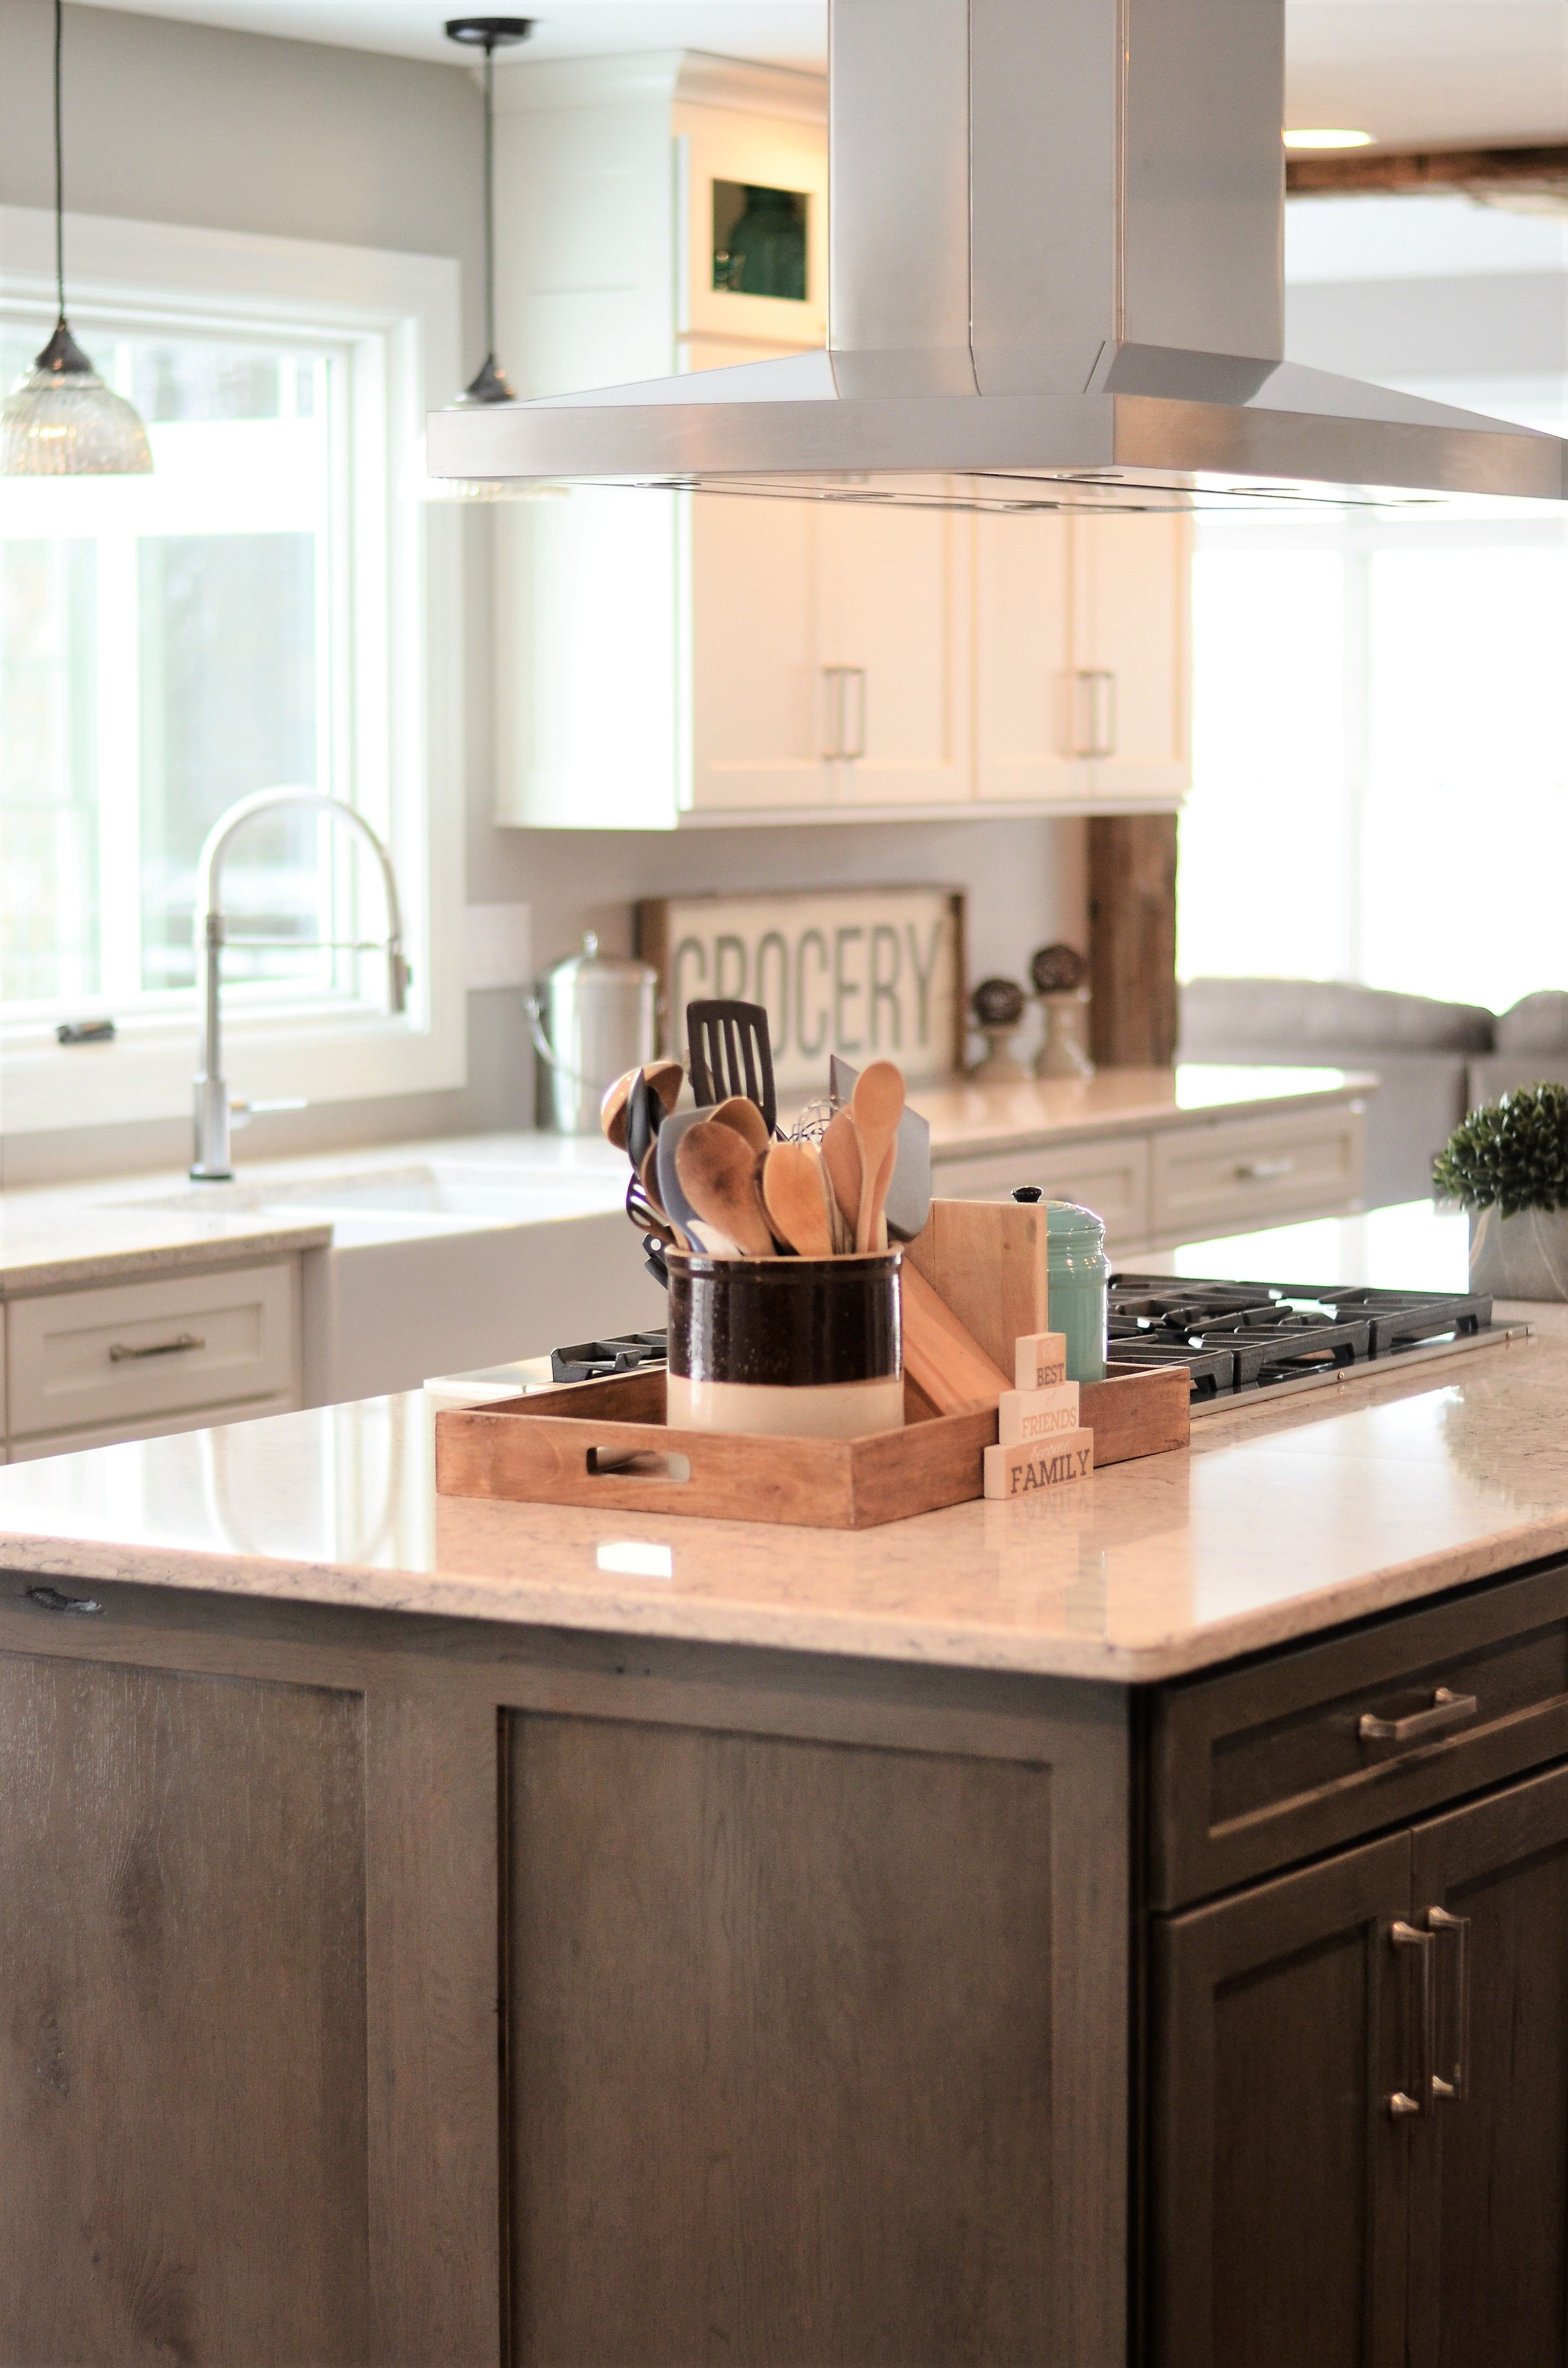 Type Of Job Kitchen Countertops Material Granite Color